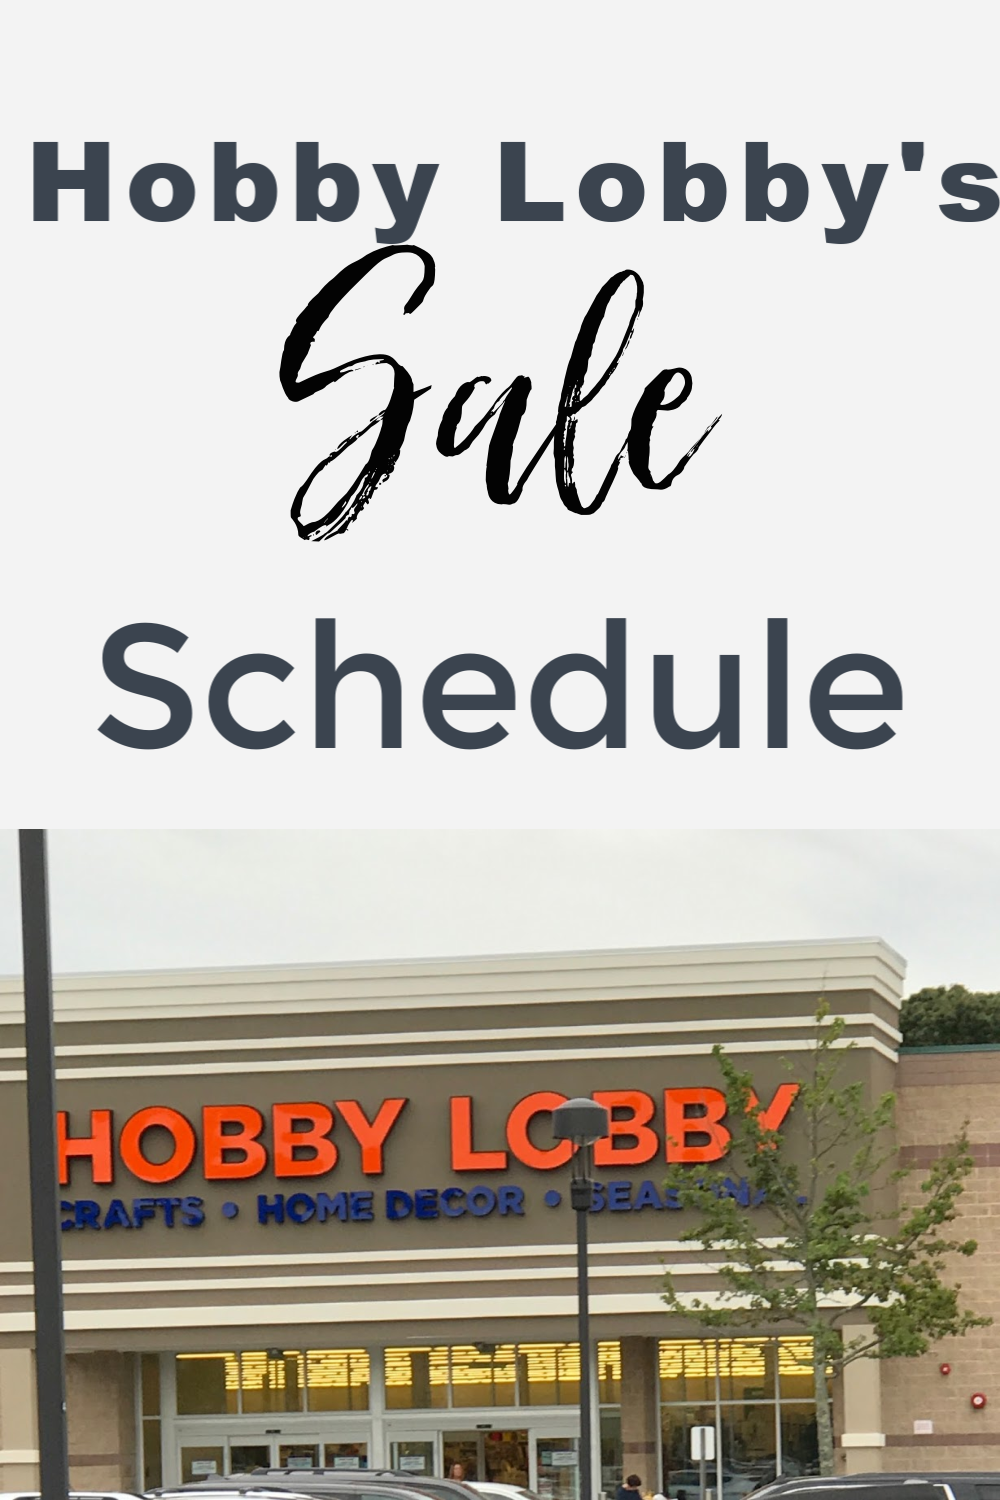 Hey guys, I'm back with another great shopping tip! Don't go to Hobby Lobby without reading this!